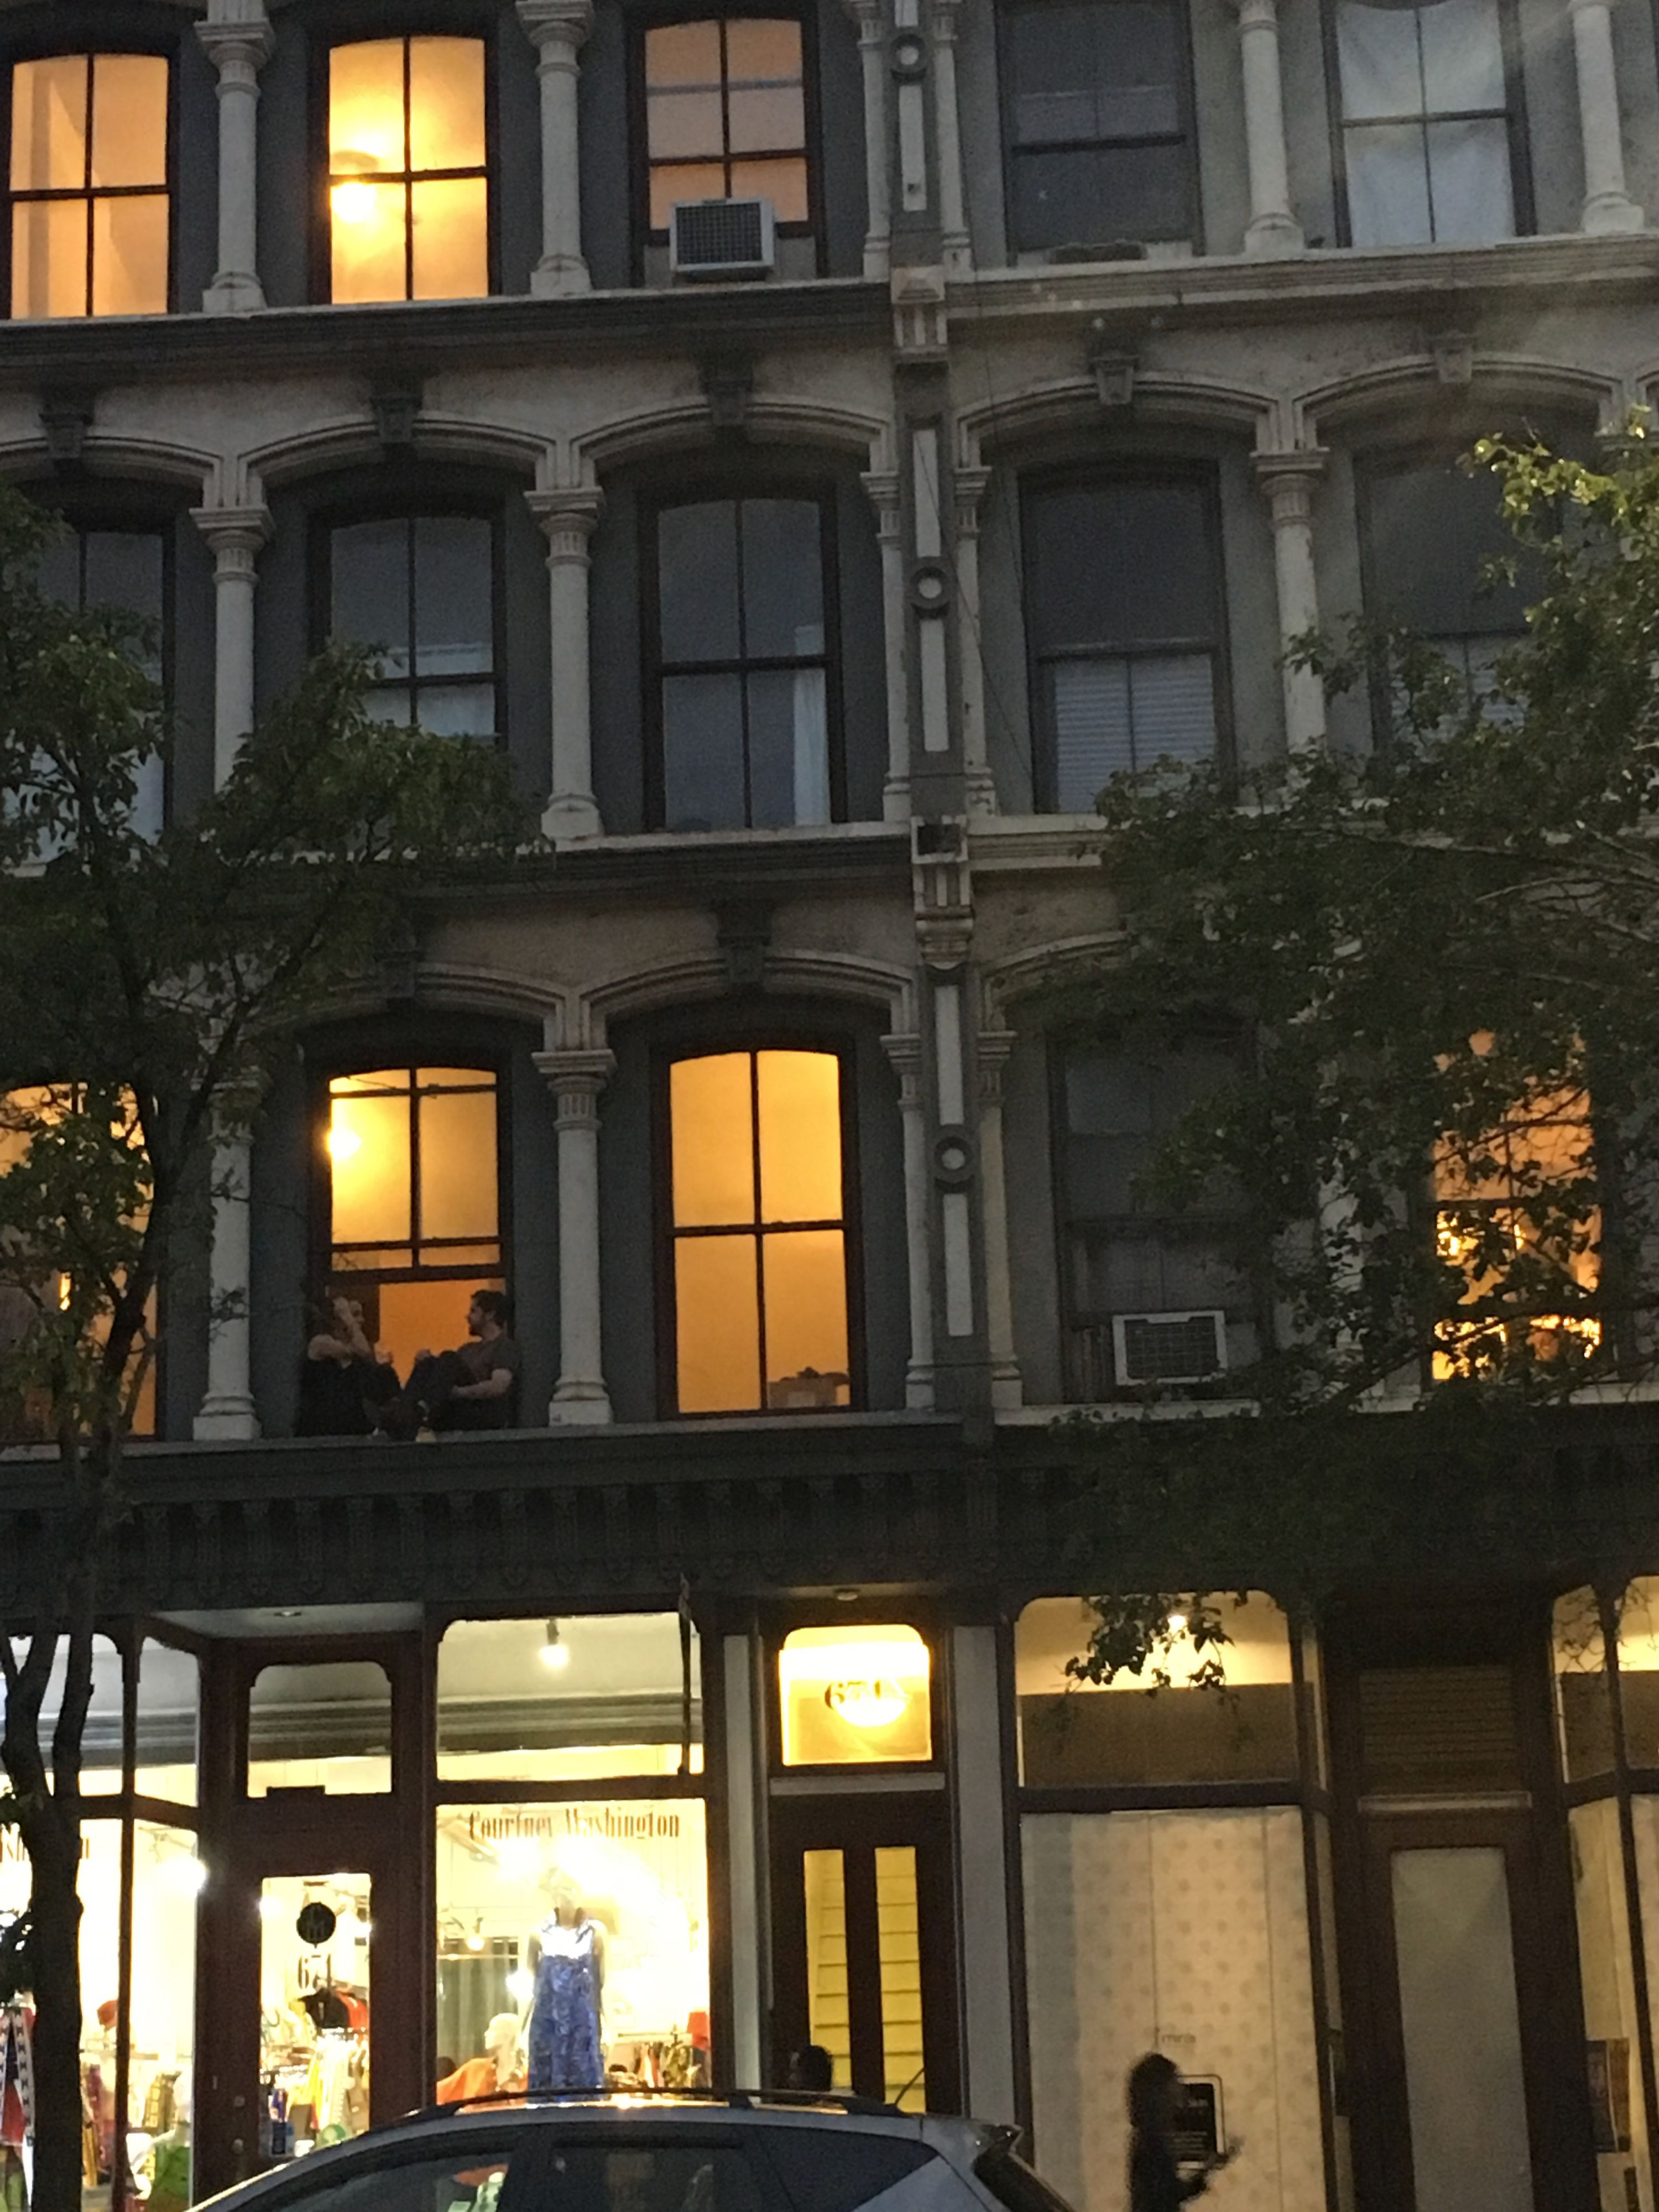 Photo of a New York City apartment's windows from the outside.